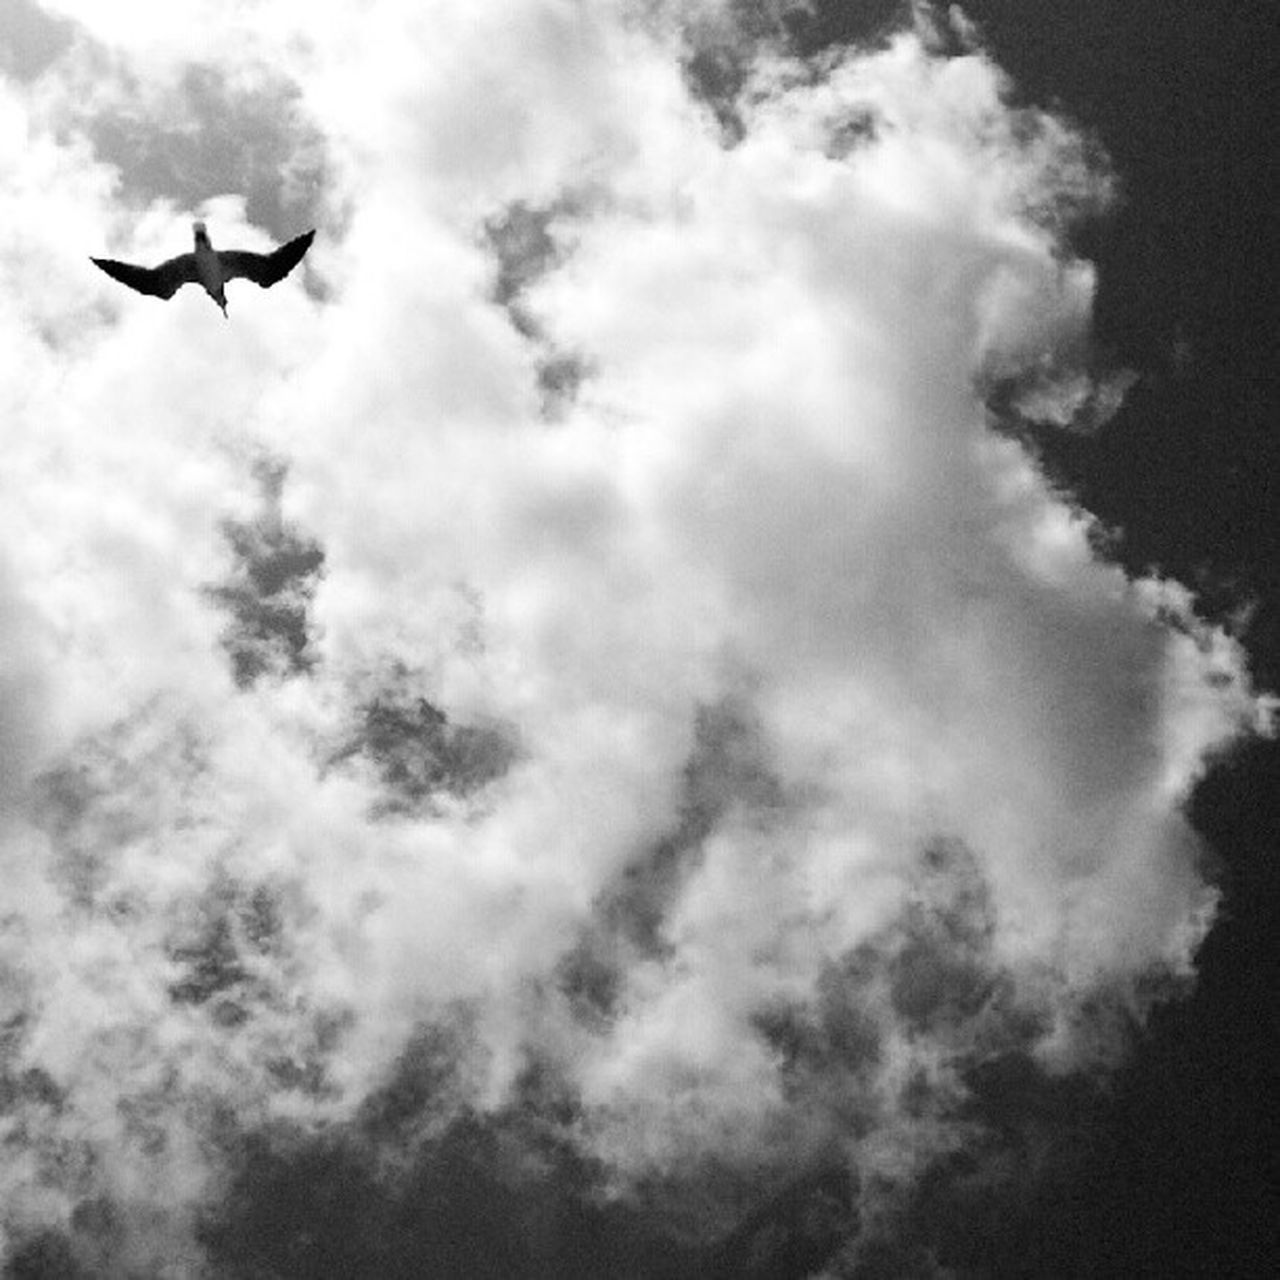 Fly away Lookingup Blackandwhite Bnw Fortheloveofblackandwhite Monochrome Black&white LiveanddirectfromLosAngeles Sky Skyporn Birds Clouds Clouds And Sky